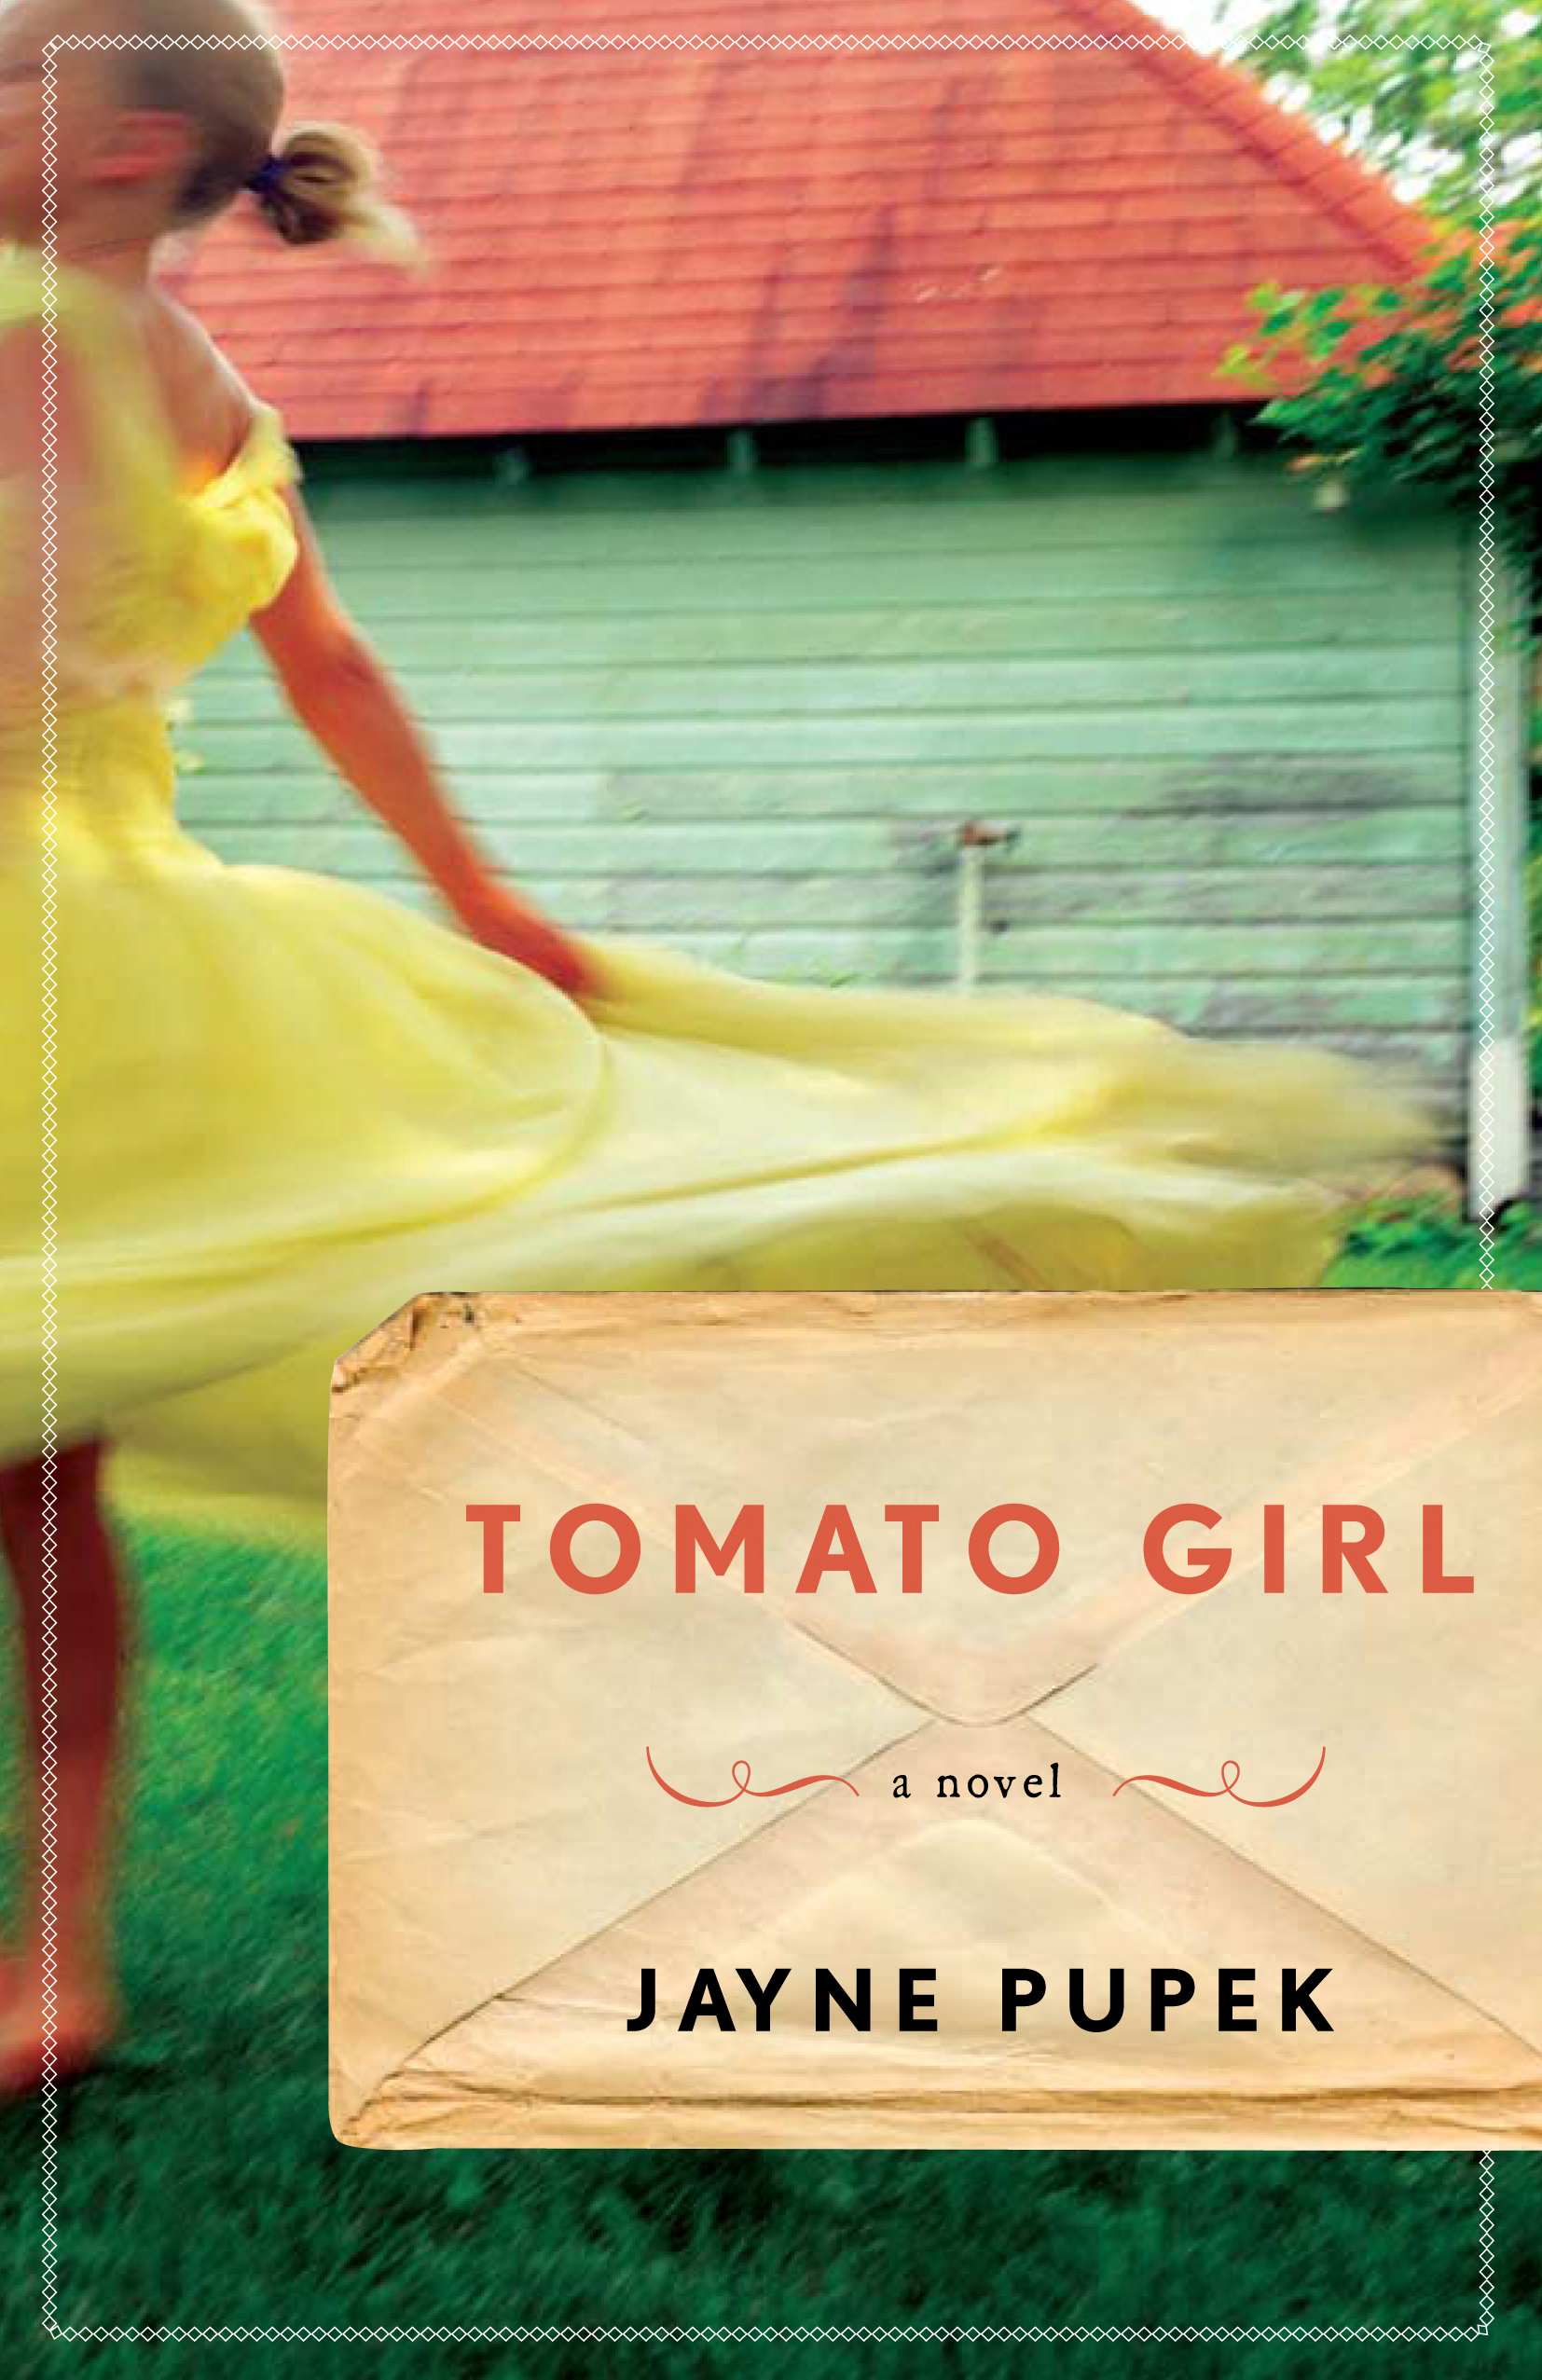 http://bermudaonion.files.wordpress.com/2008/08/tomato-girl.jpg